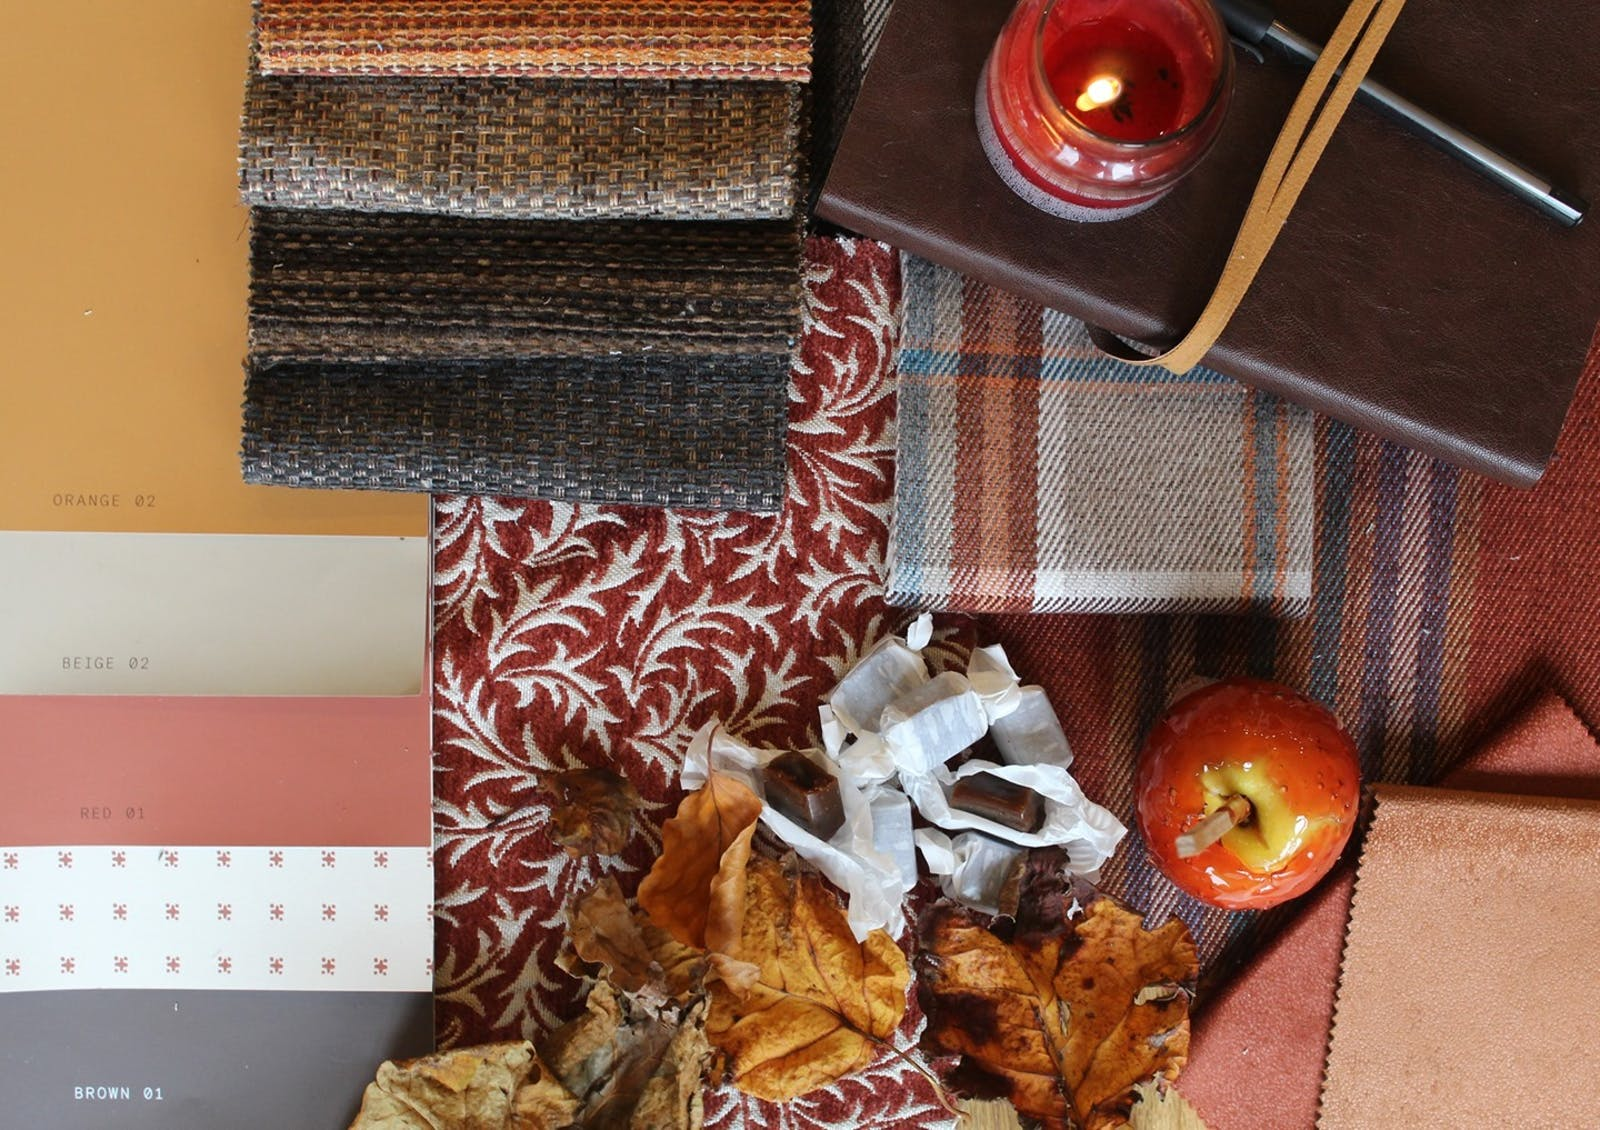 Autumnal setting with leaves, toffee apples and Lick Orange, Red and Brown paint samples